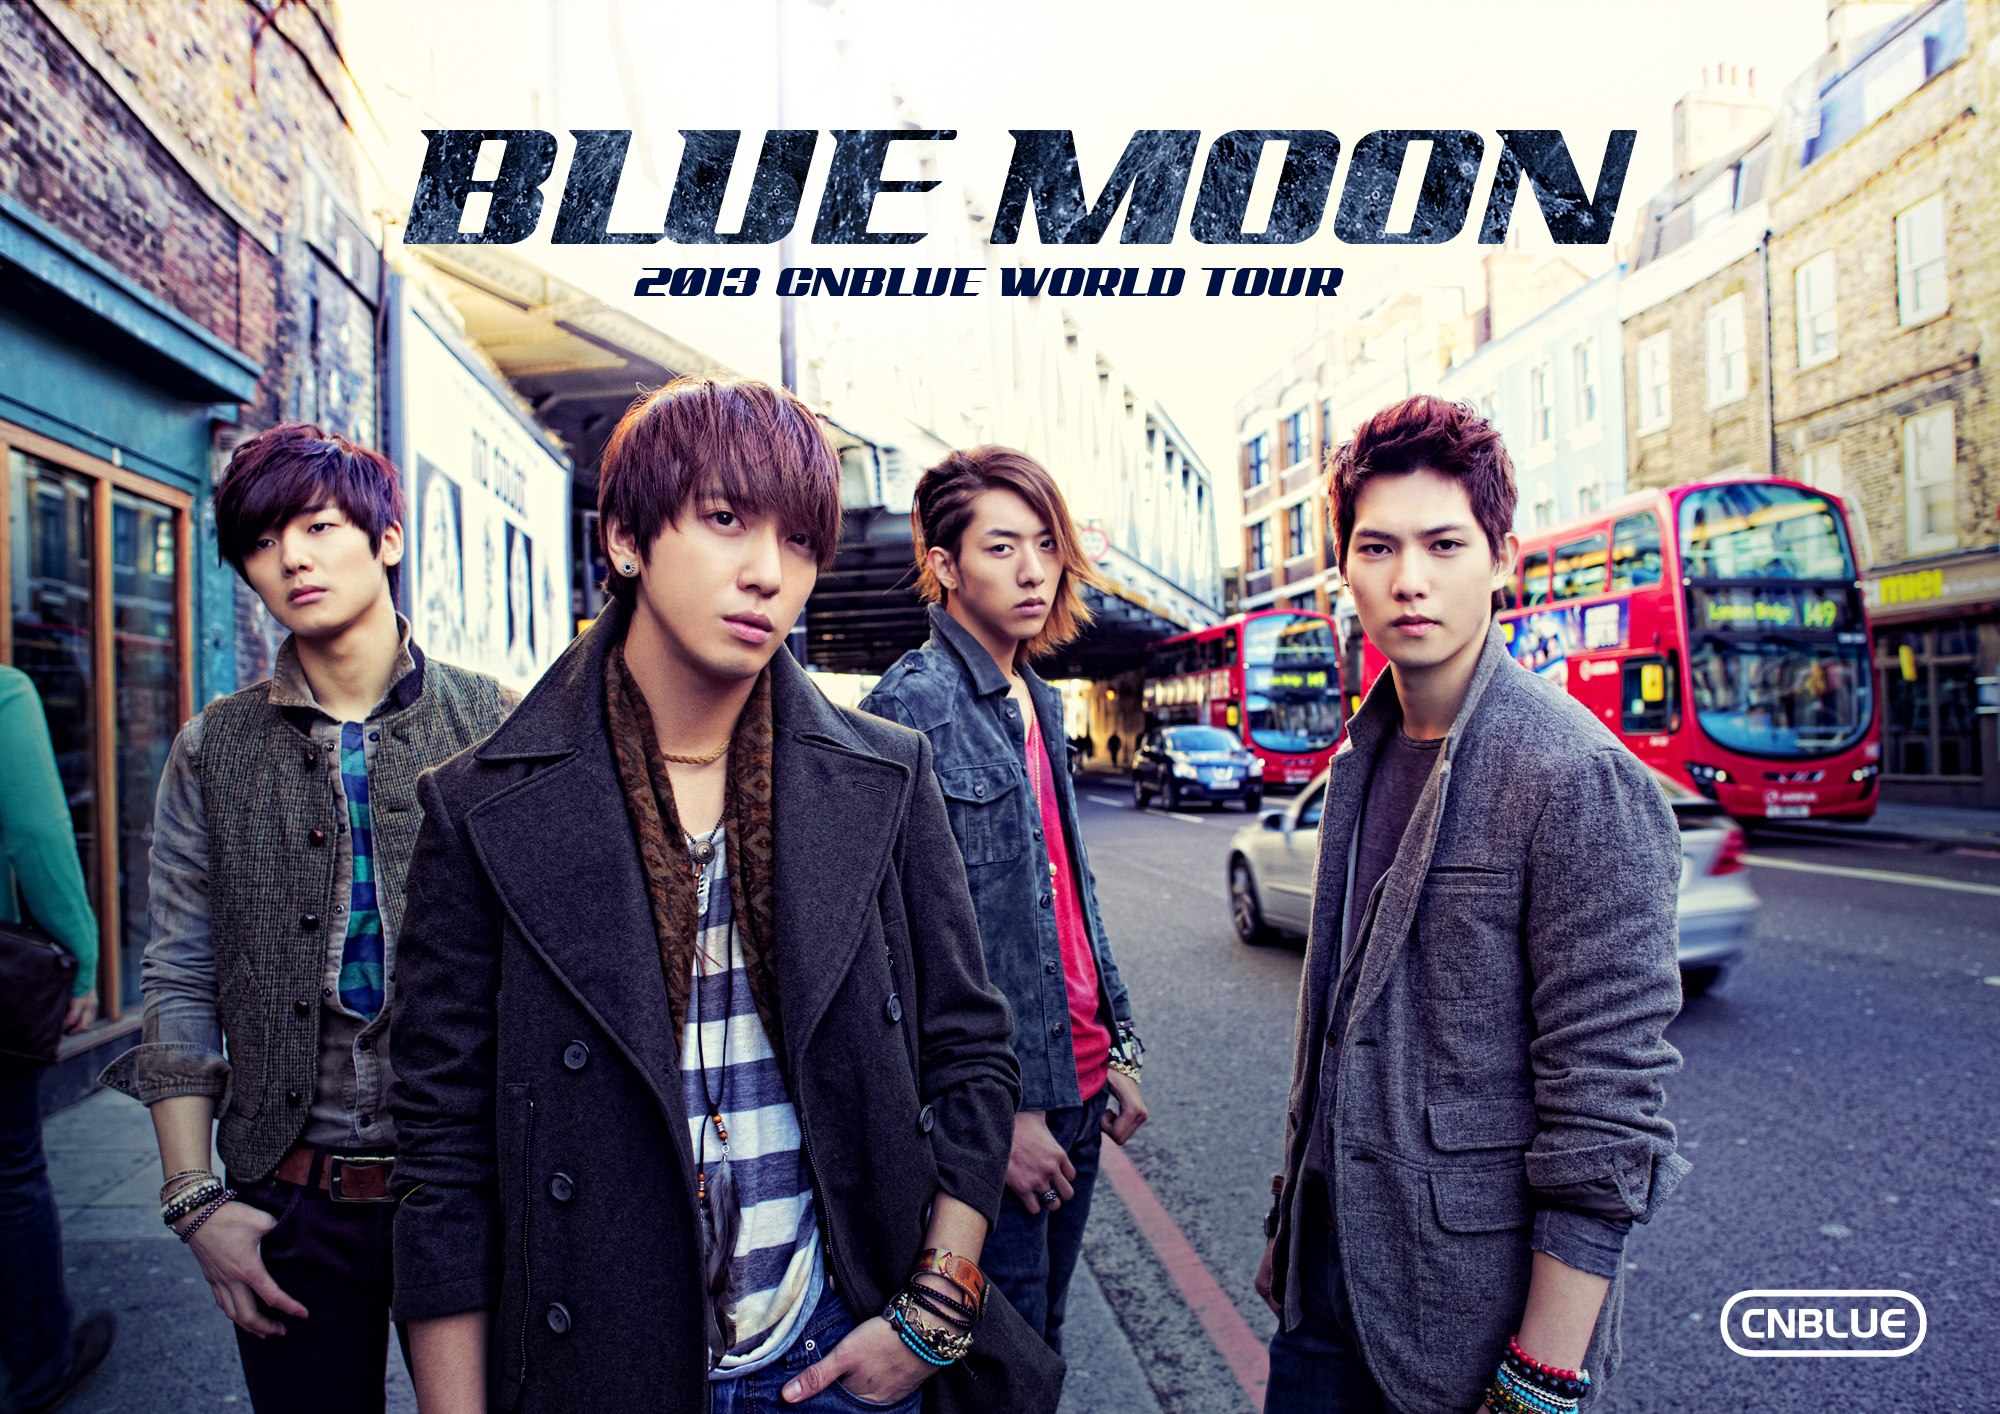 CNBLUE brings BLUE MOON concert to Malaysia